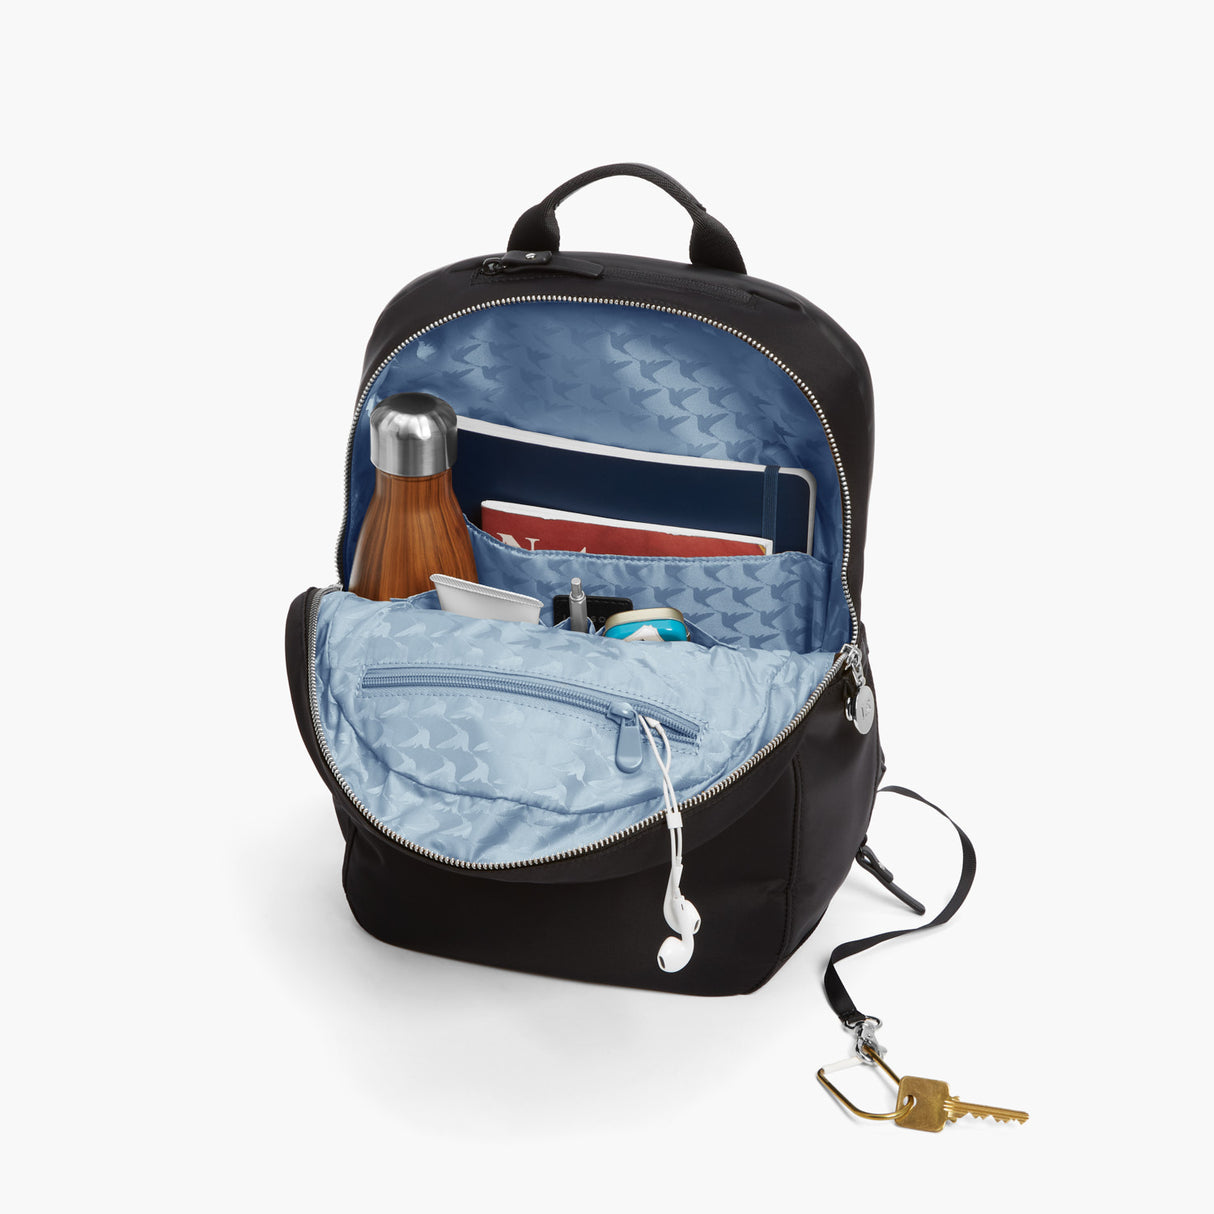 All The Details - Beacon - Nylon - Black / Silver / Azure - Backpack - Lo & Sons